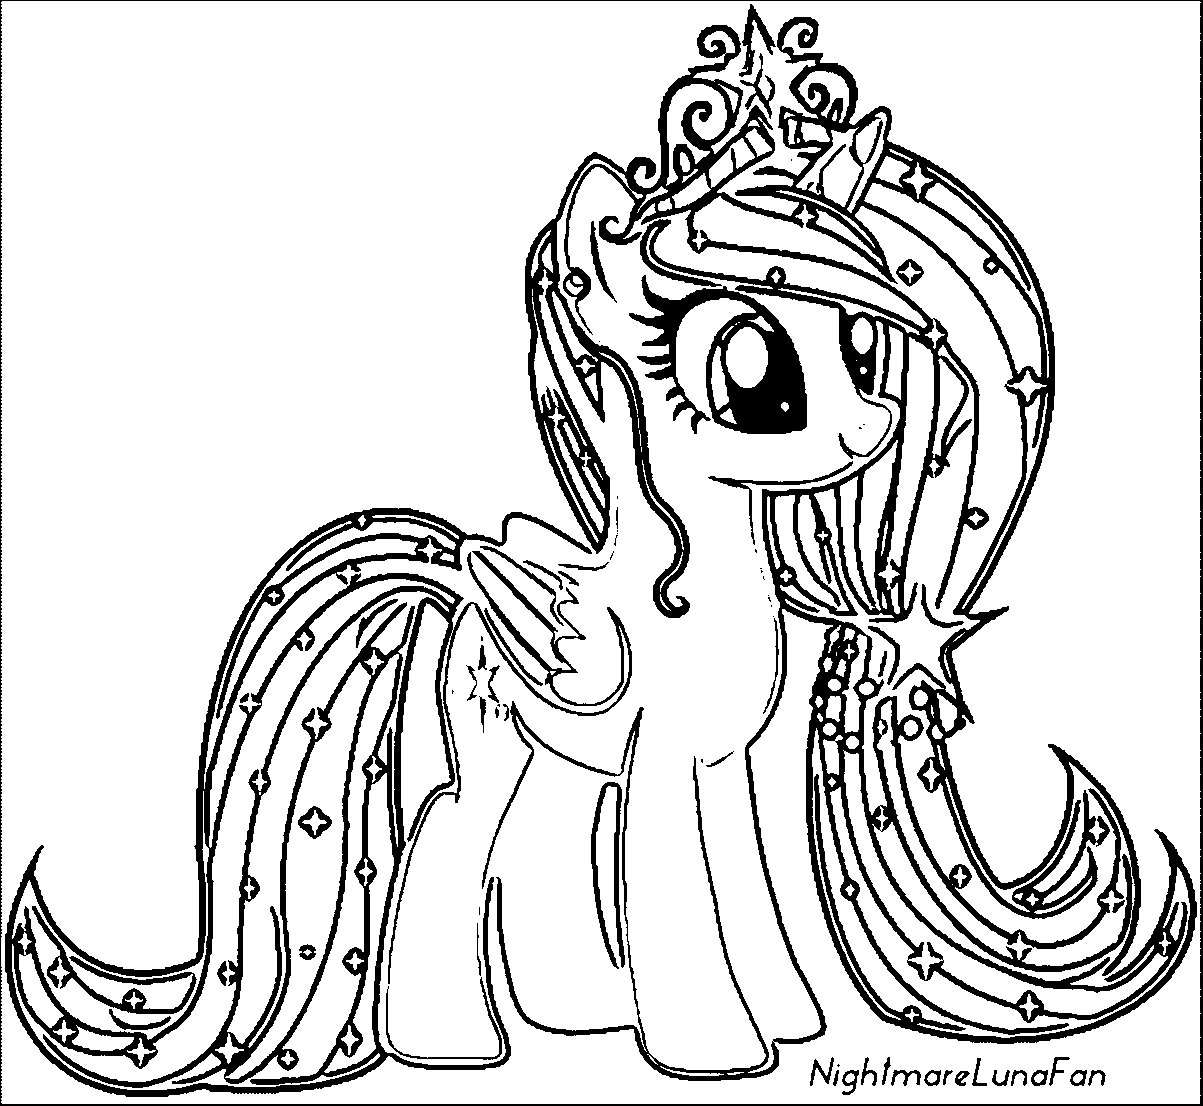 Printable My Little Pony Friendship Is Magic Princess Luna ... |My Little Pony Friendship Is Magic Coloring Pages Luna